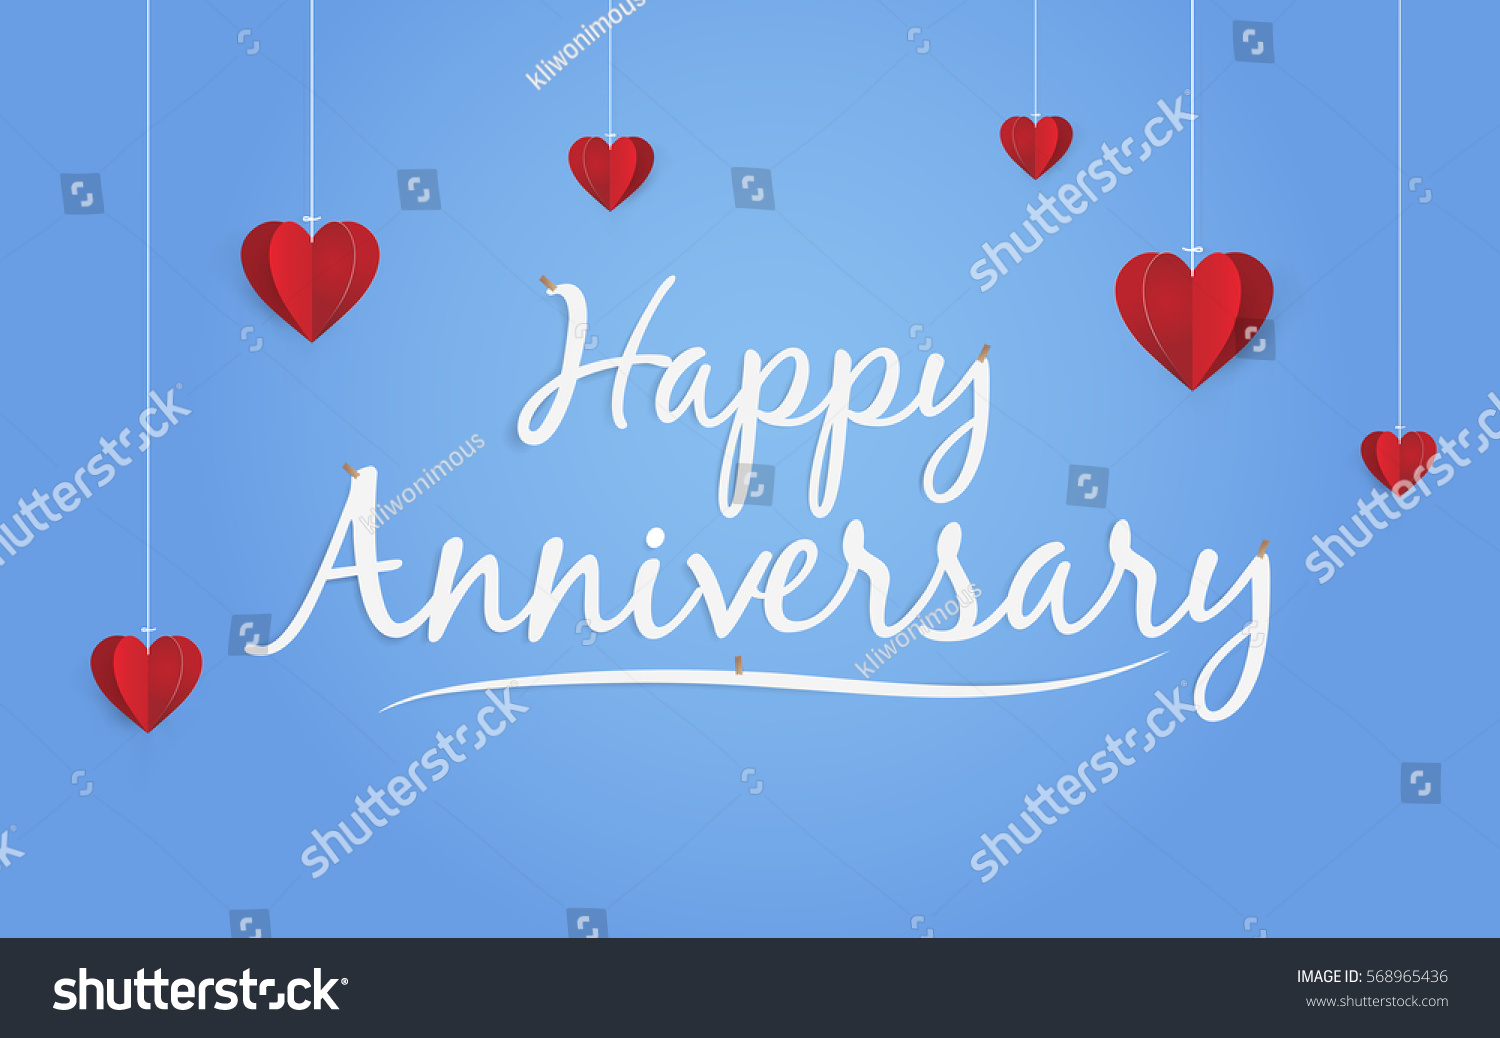 Happy Anniversary Design Paper Art Style Stock Vector Royalty Free